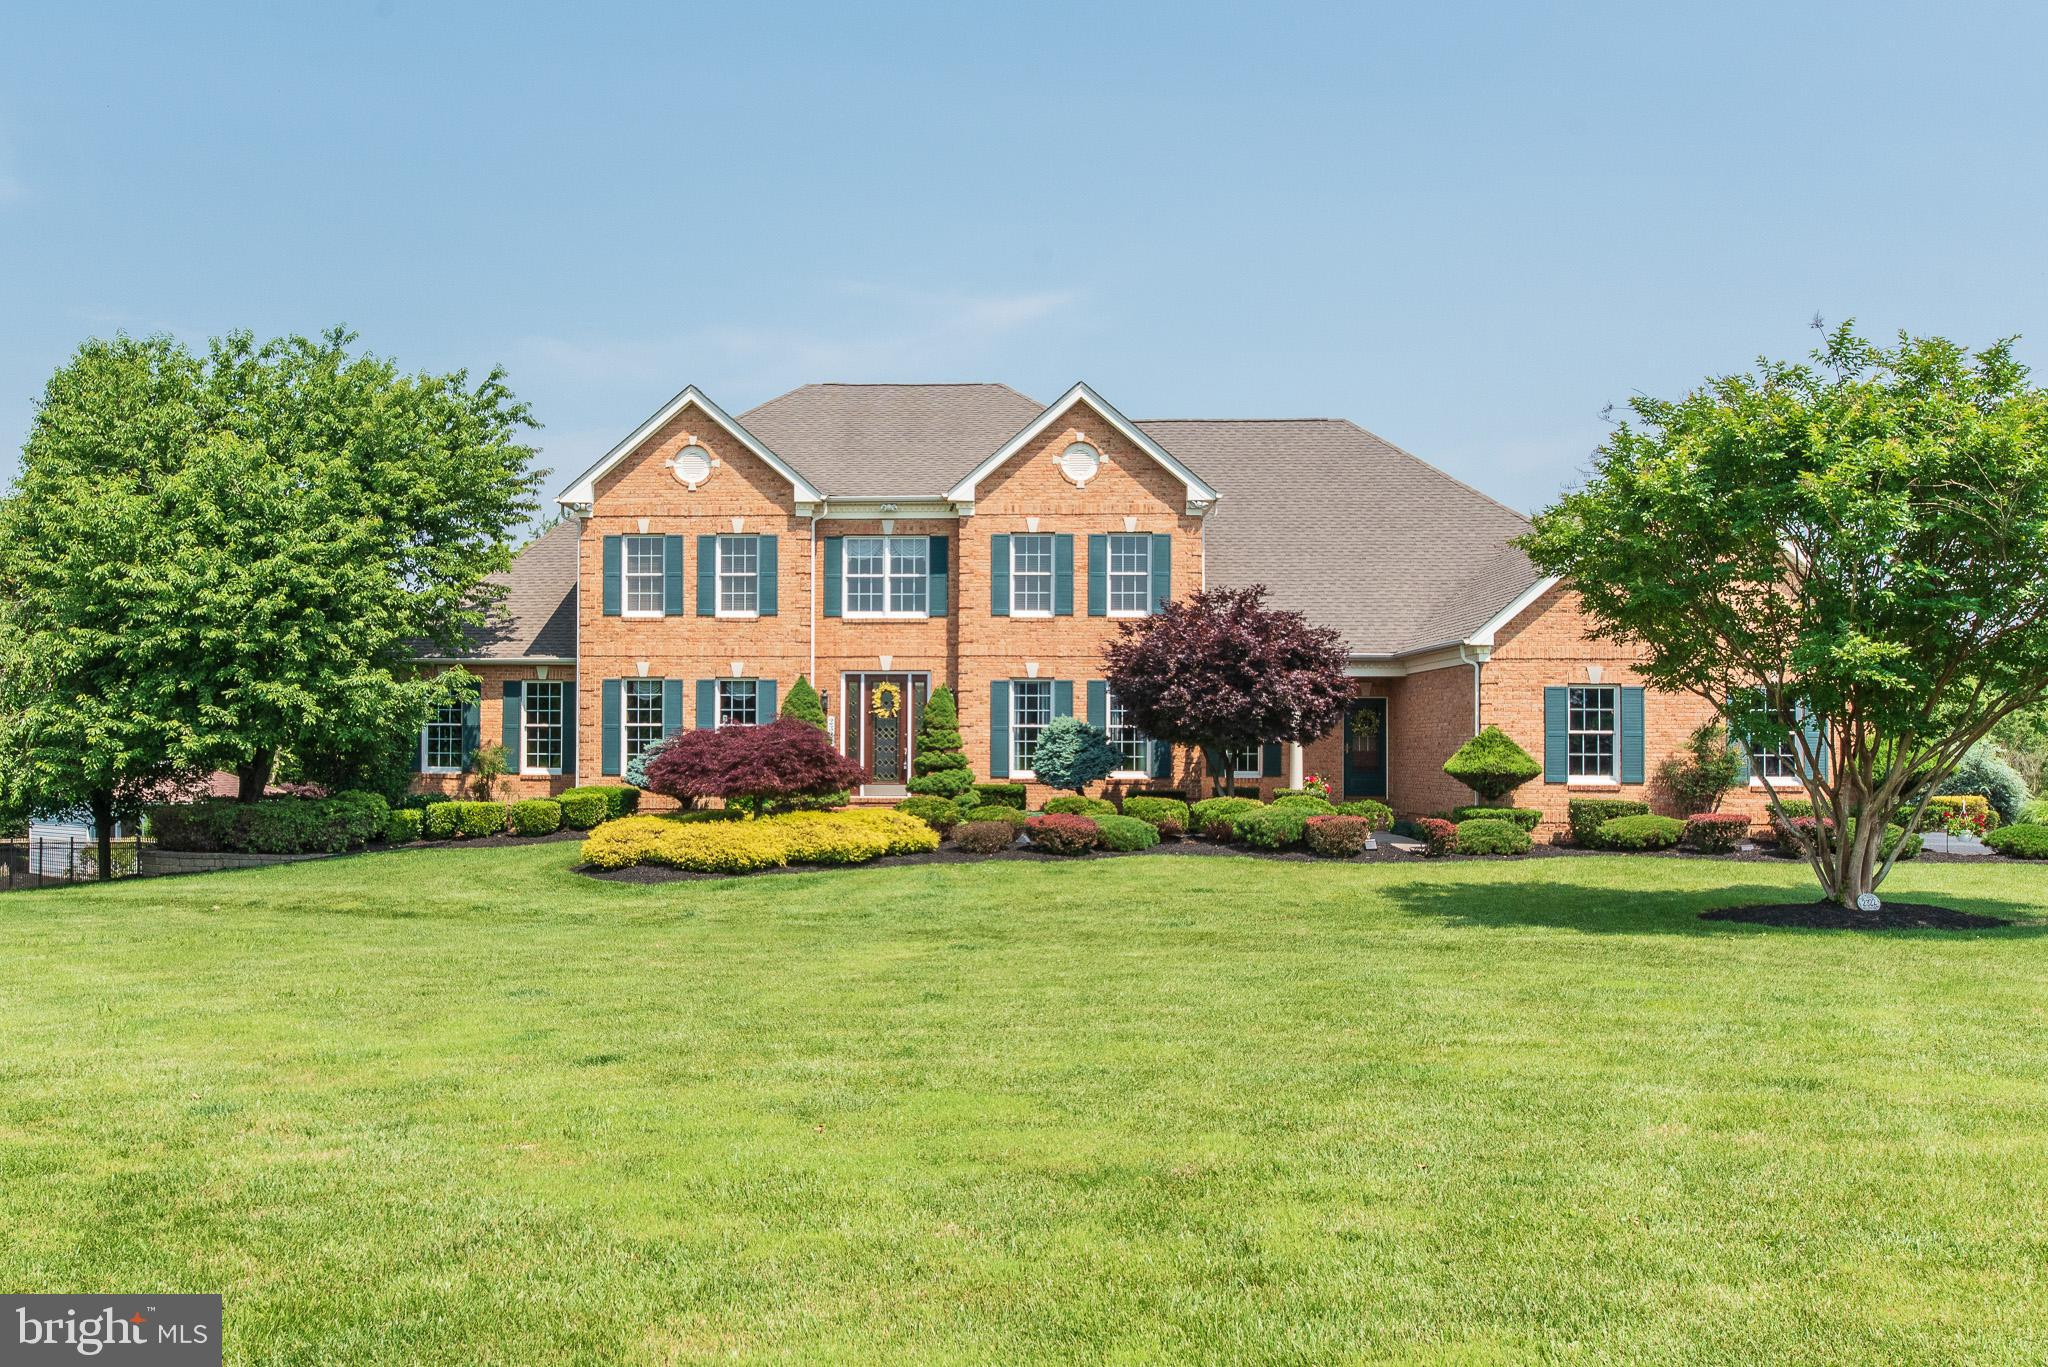 2322 WILLOW VALE DRIVE, FALLSTON, MD 21047